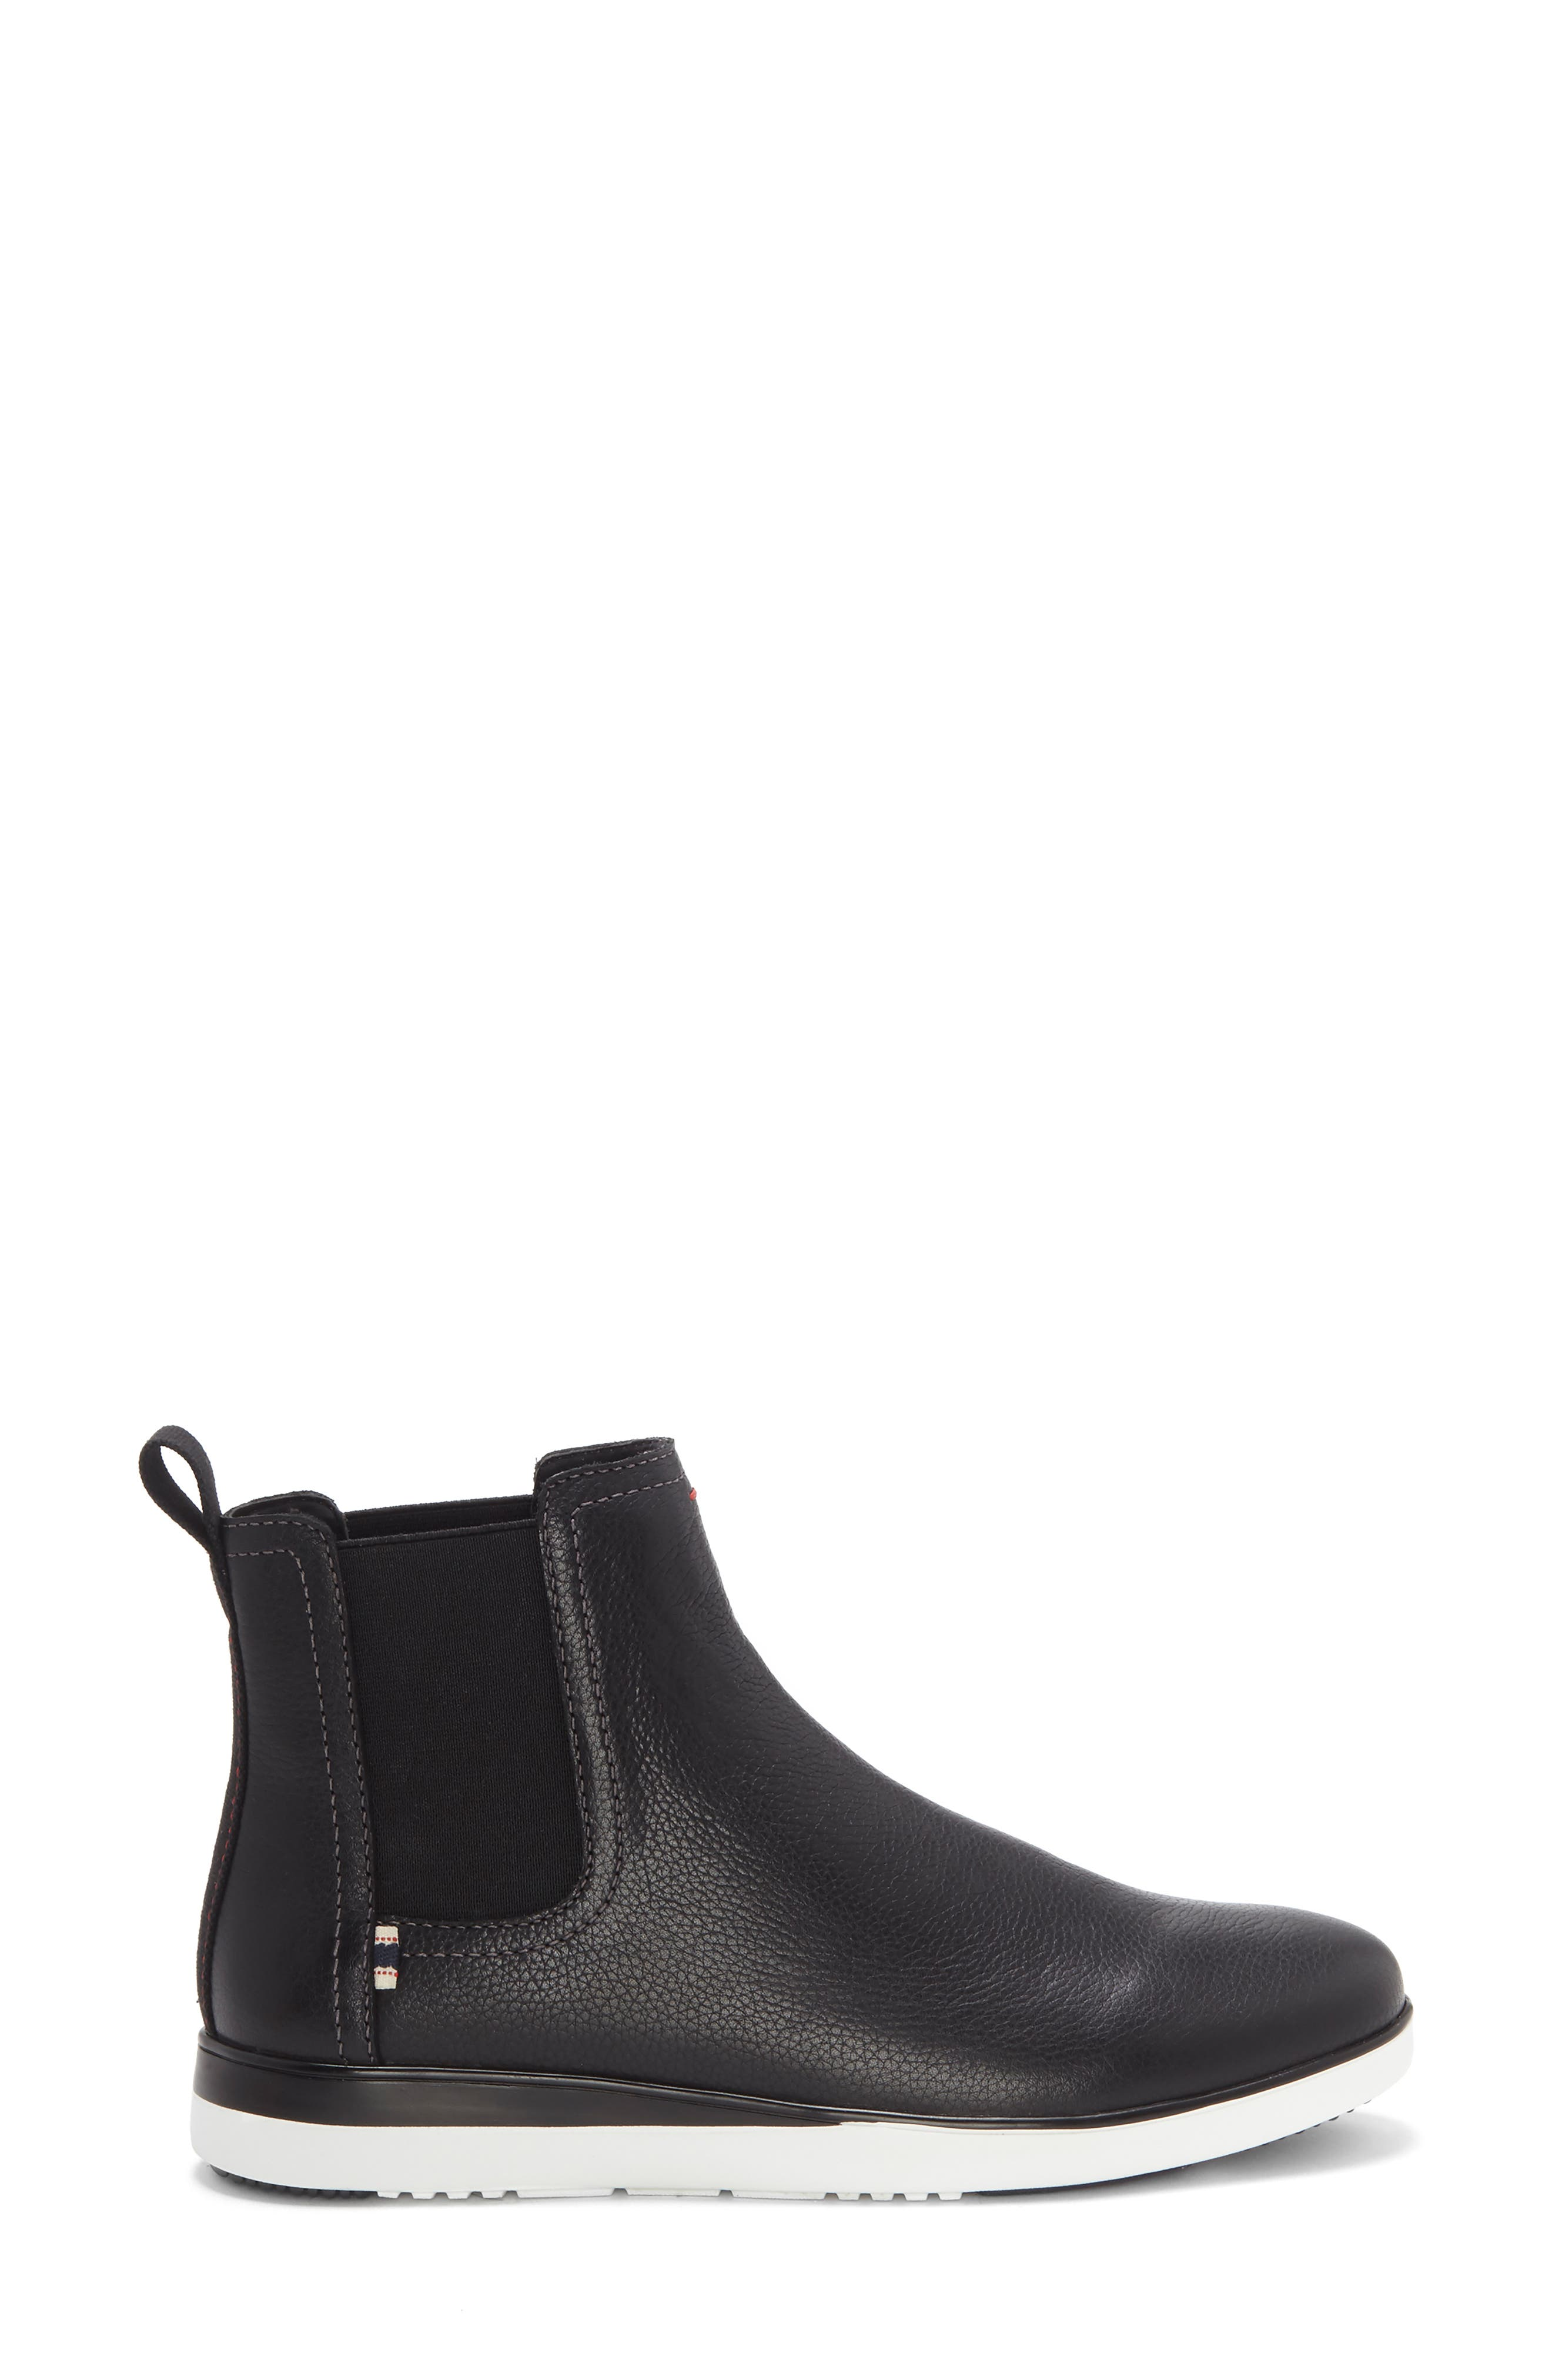 Alvarie Chelsea Bootie,                             Alternate thumbnail 3, color,                             BLACK LEATHER